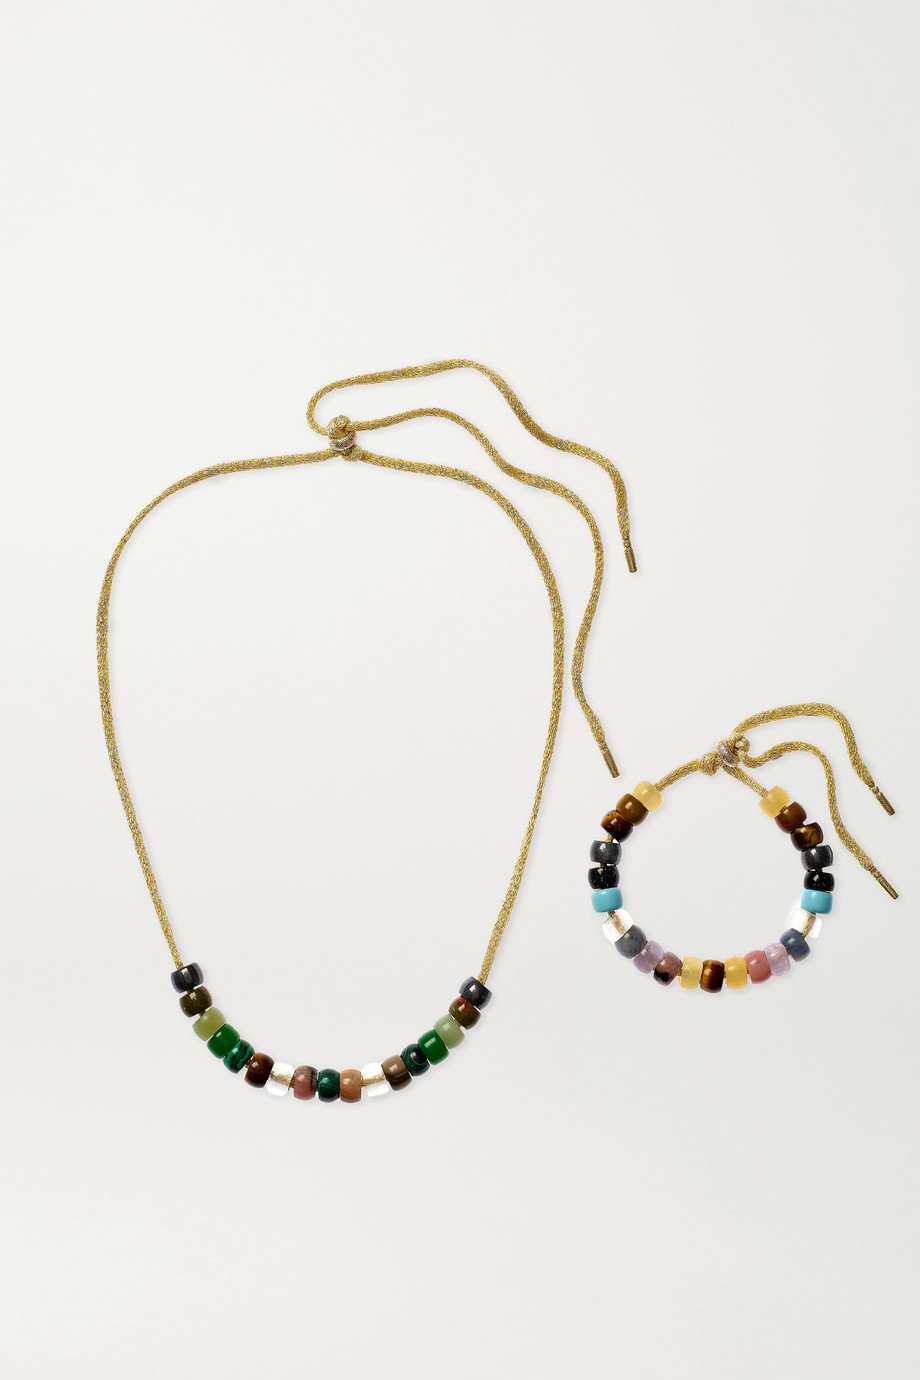 Carolina Bucci FORTE Beads 18-karat gold and multi-stone gift set